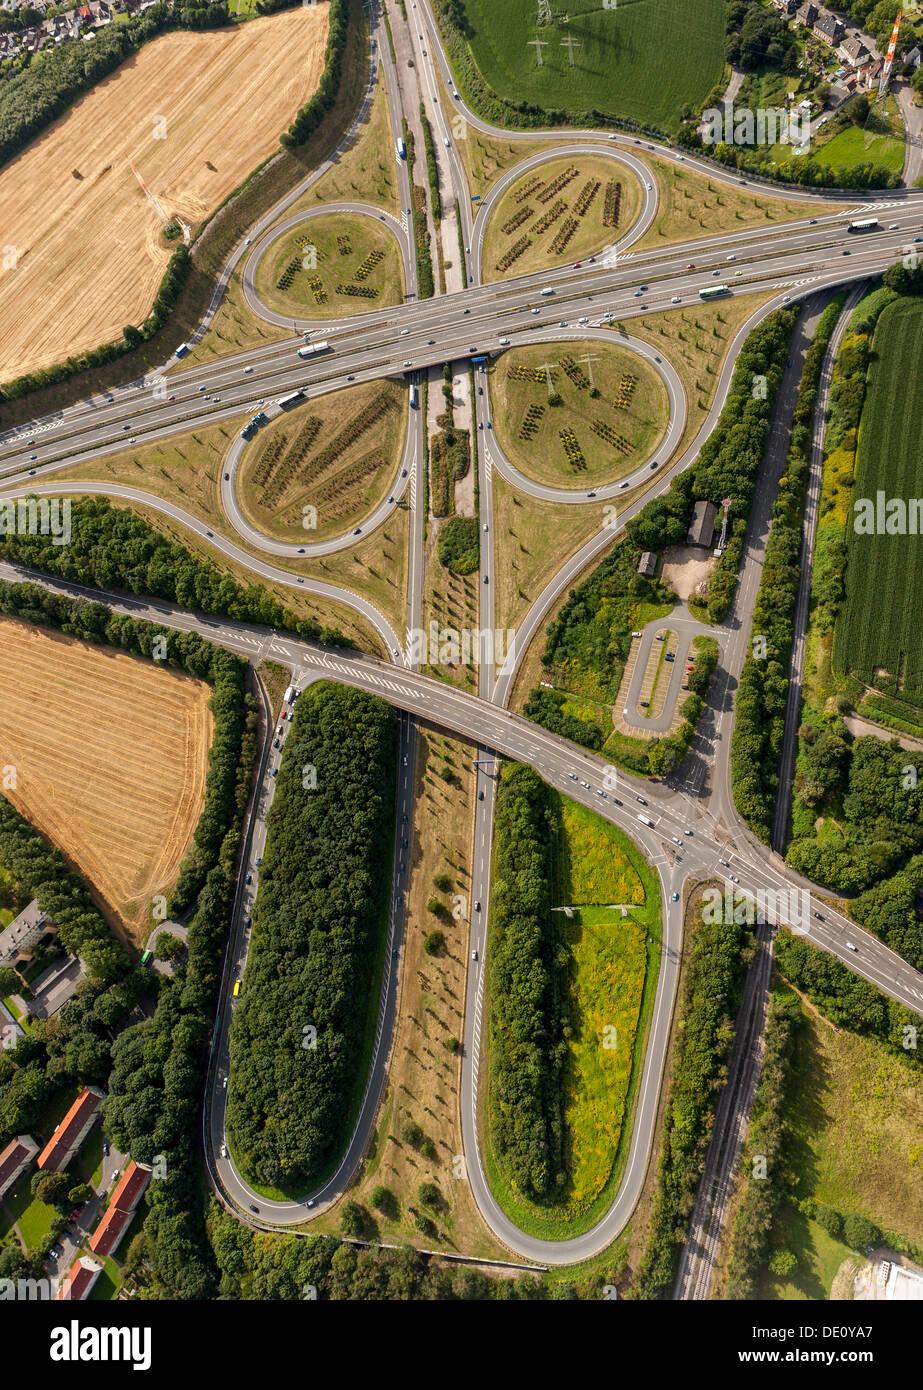 Aerial view, DO-Bodelschwingh motorway intersection, CAS-Ost motorway, A45 motorway and A42 motorway, Dortmund, Ruhr area - Stock Image